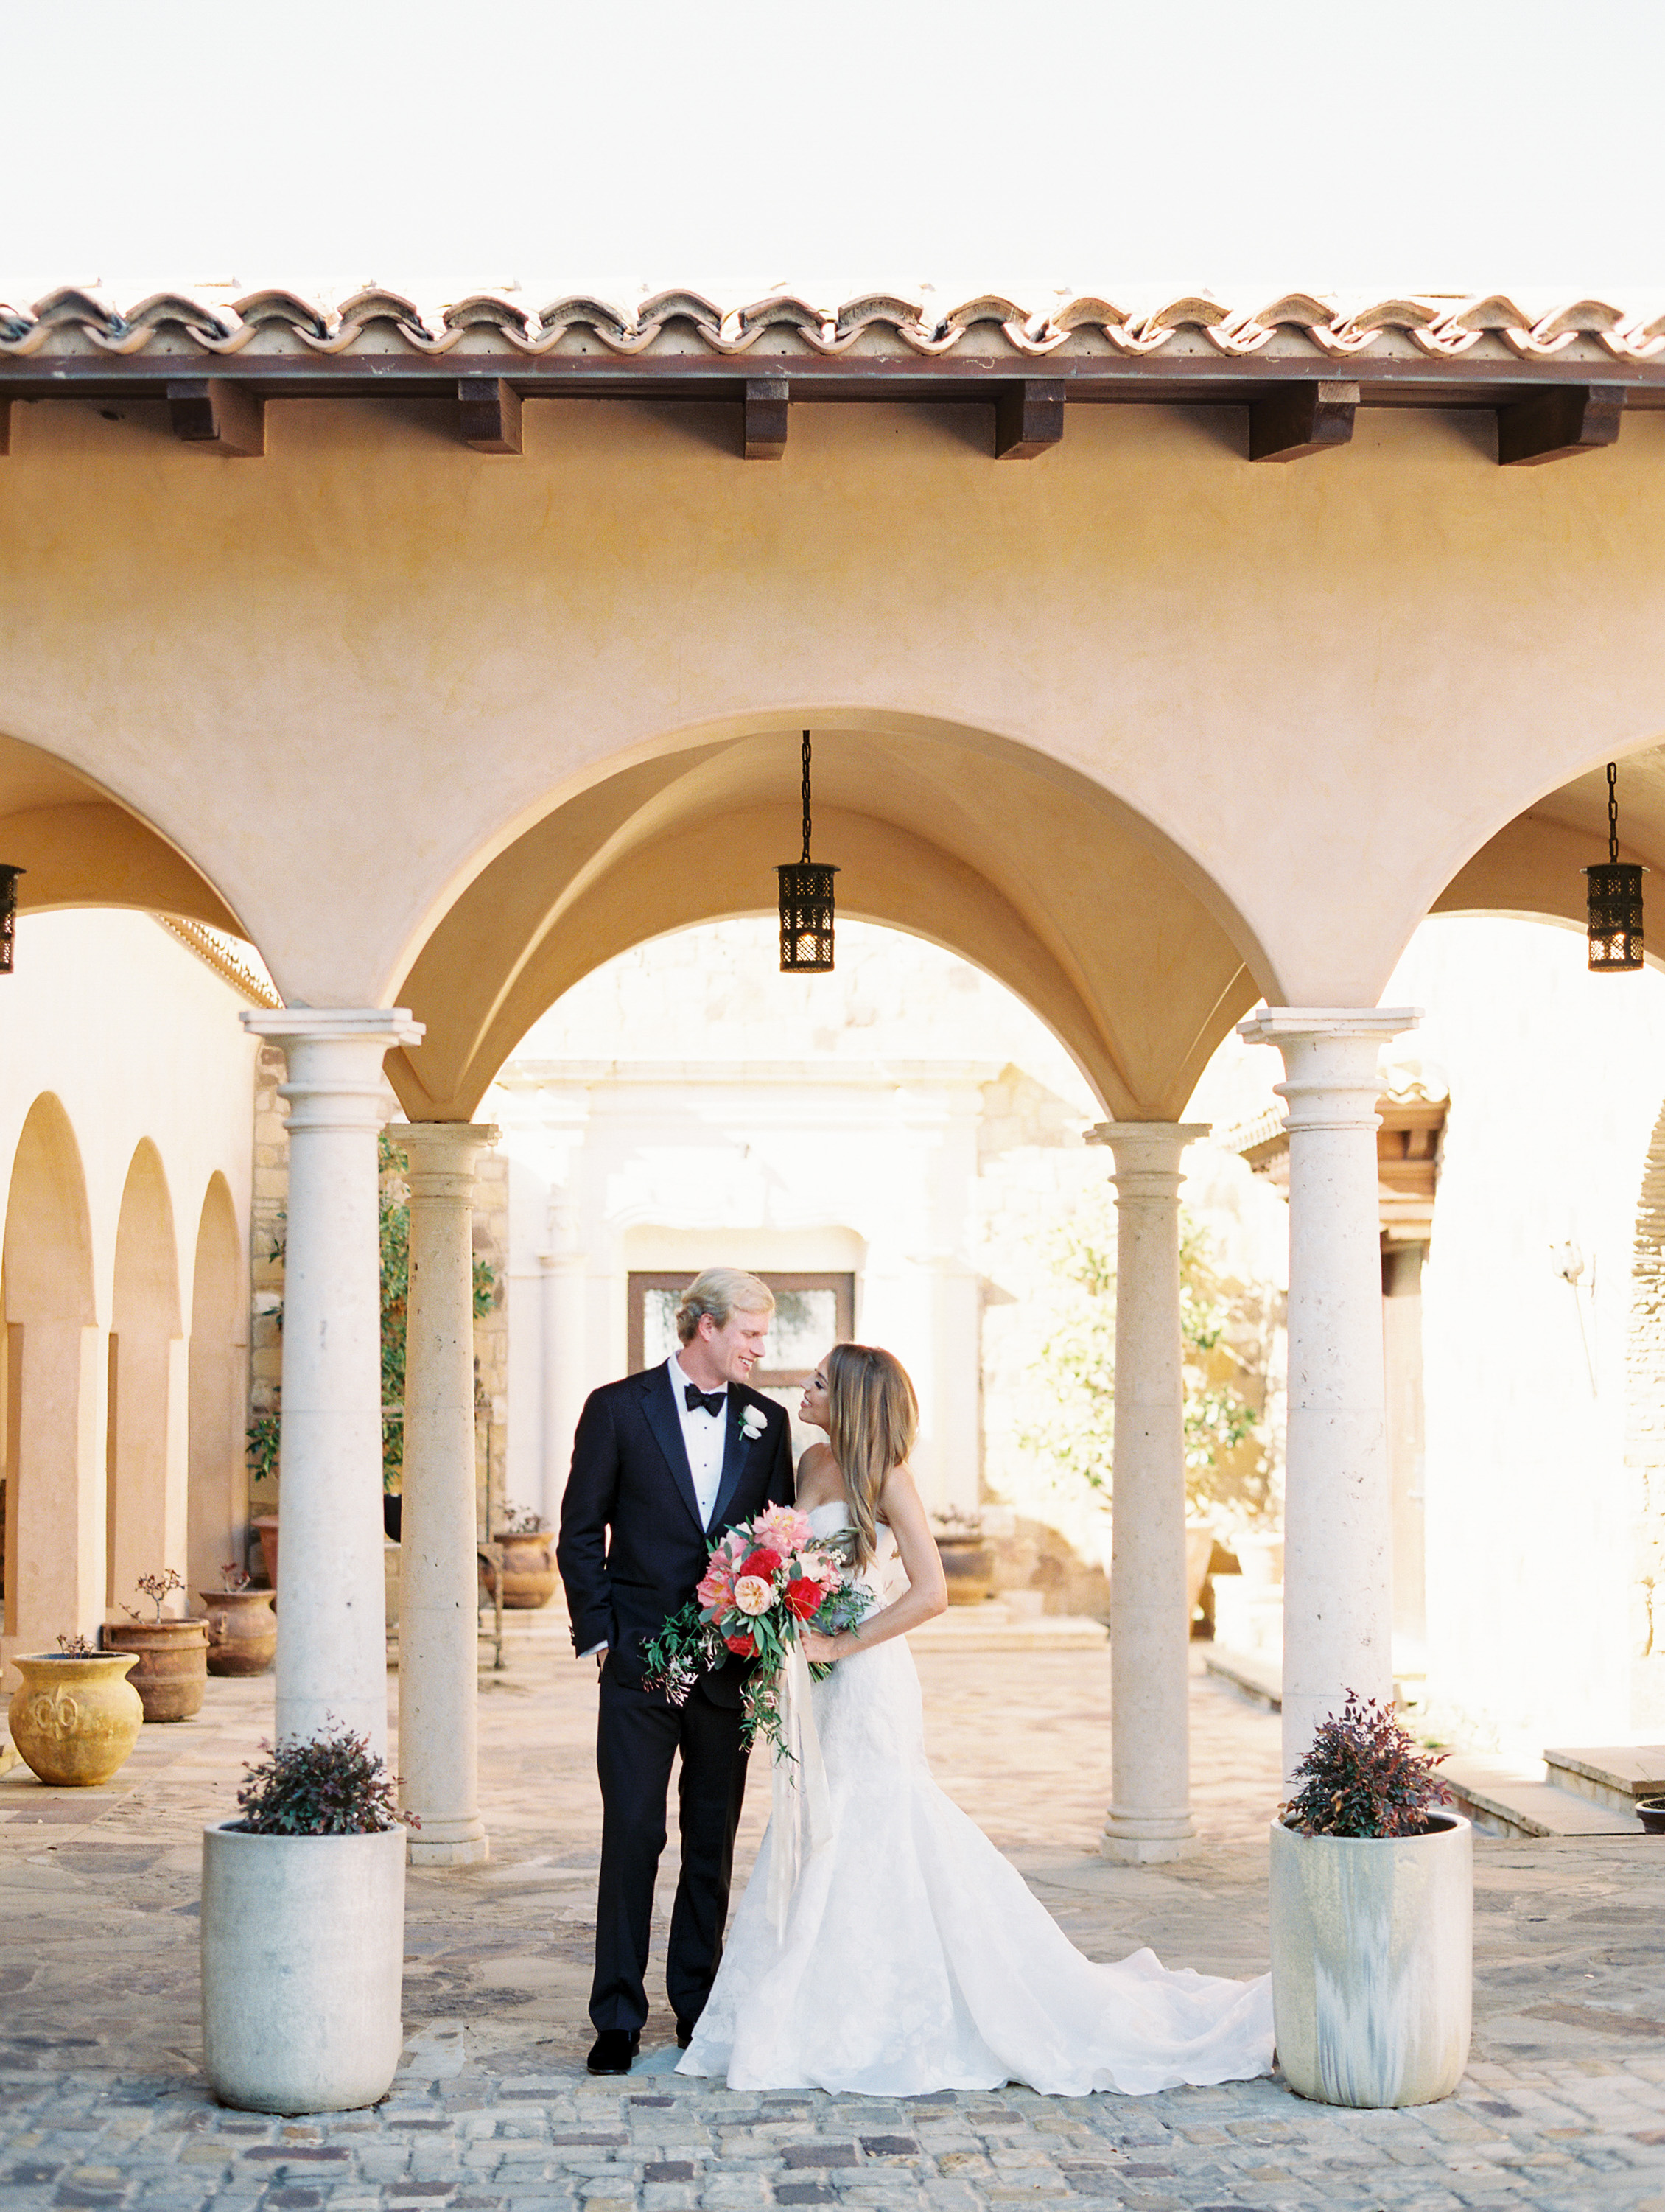 Escondido-Golf_Lake-Club-Hill-Country-Houston-Wedding-Photographer-Best-Top-Luxury-Destination-Engagements-Portrait-Austin-Photography-1.jpg